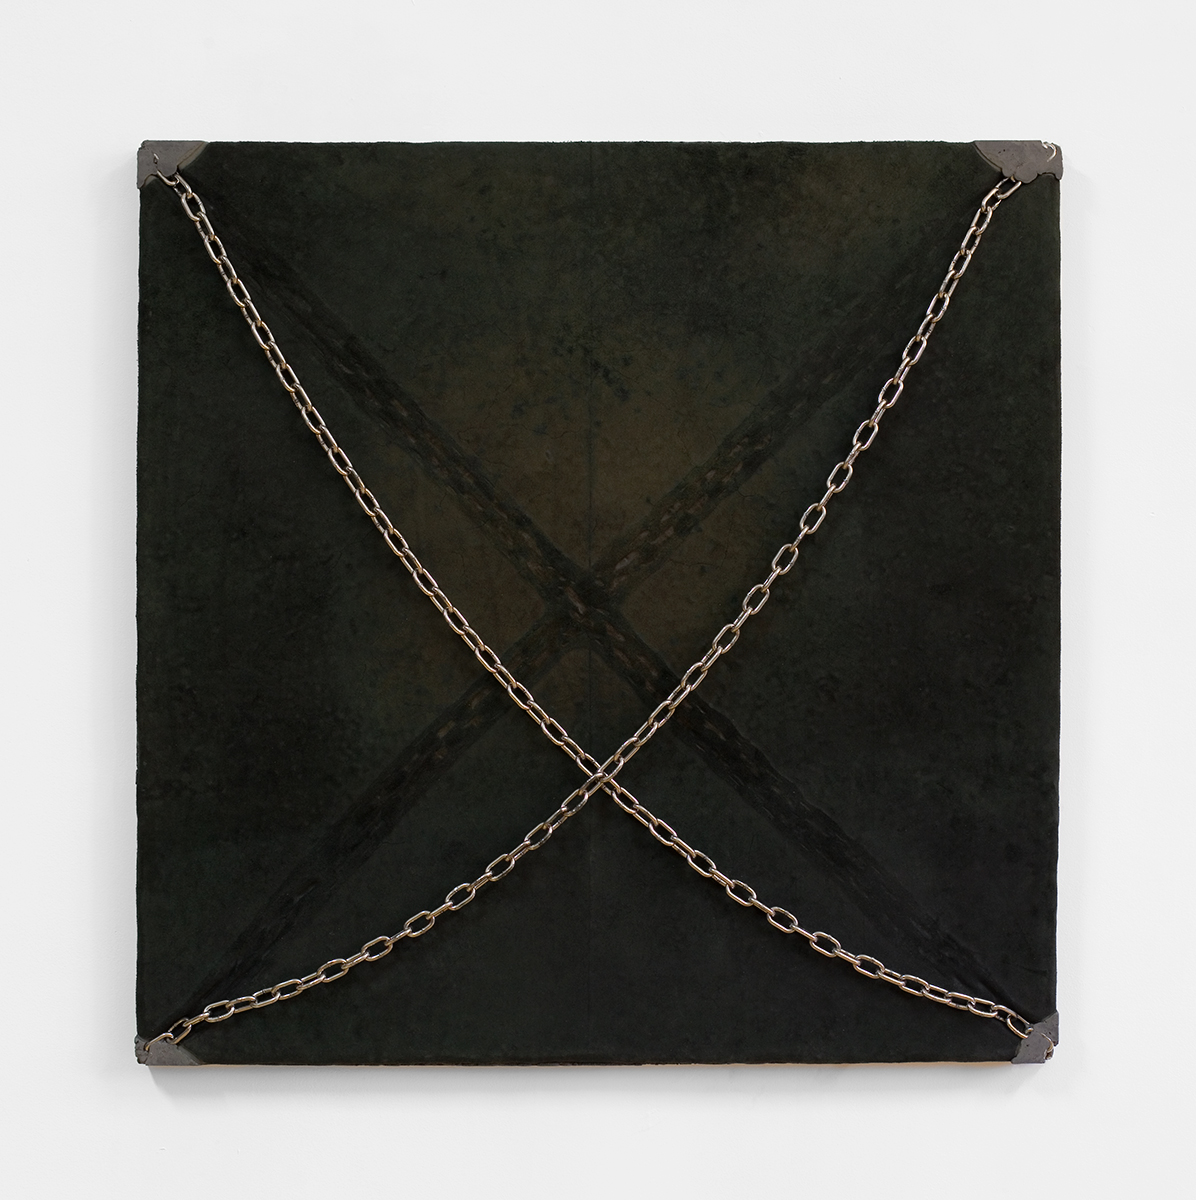 Davina Semo    I MAKE MYSELF STILL, TO LISTEN , 2015  Stainless steel chain, leather, pigmented reinforced concrete  36 x 36 x 2.25 inches